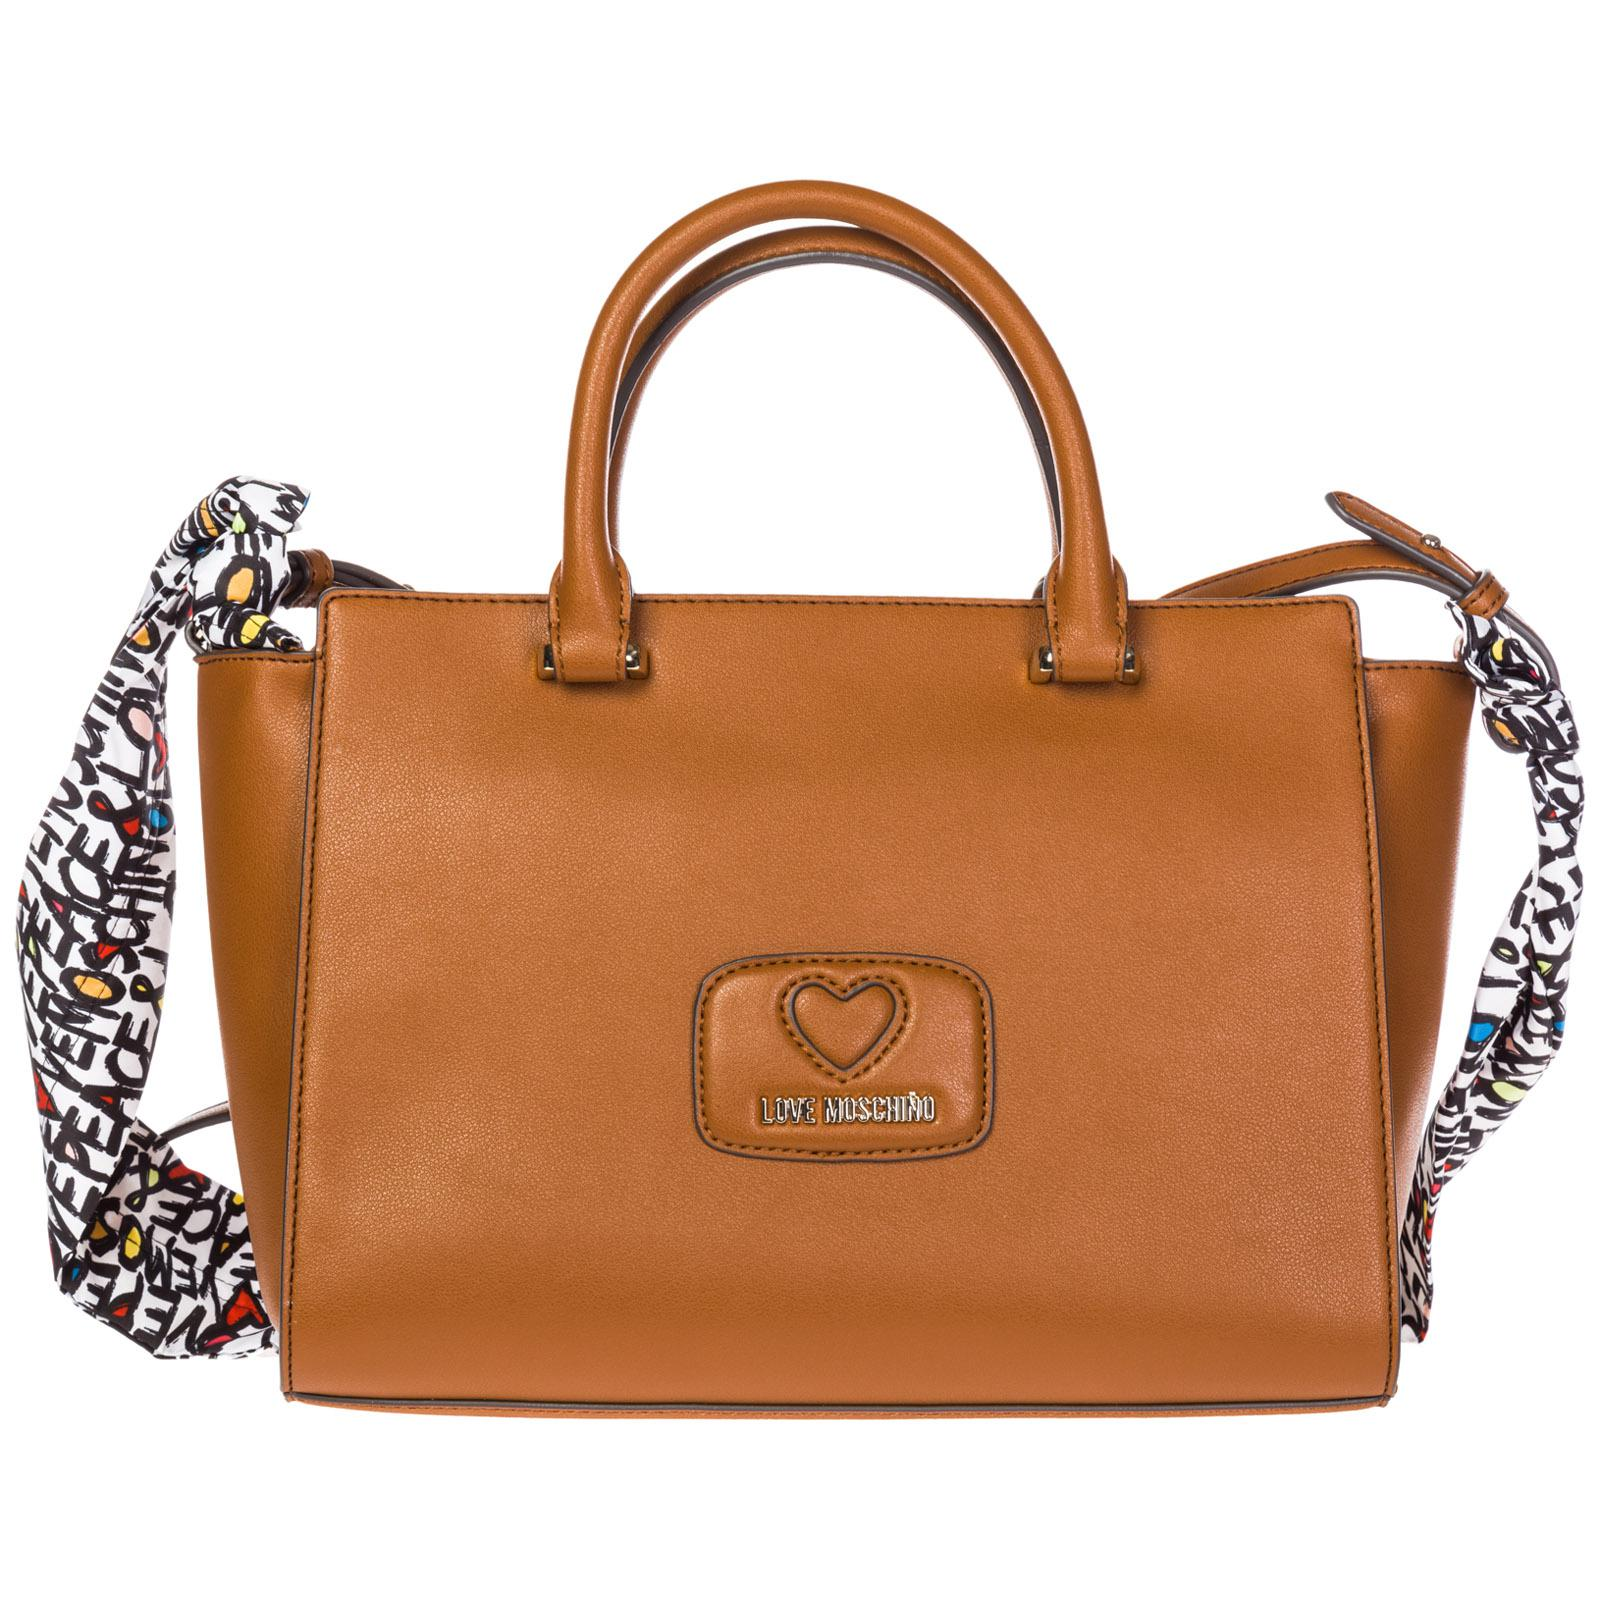 Lyst - Love Moschino Shoulder Bag in Brown 62a3c16a612